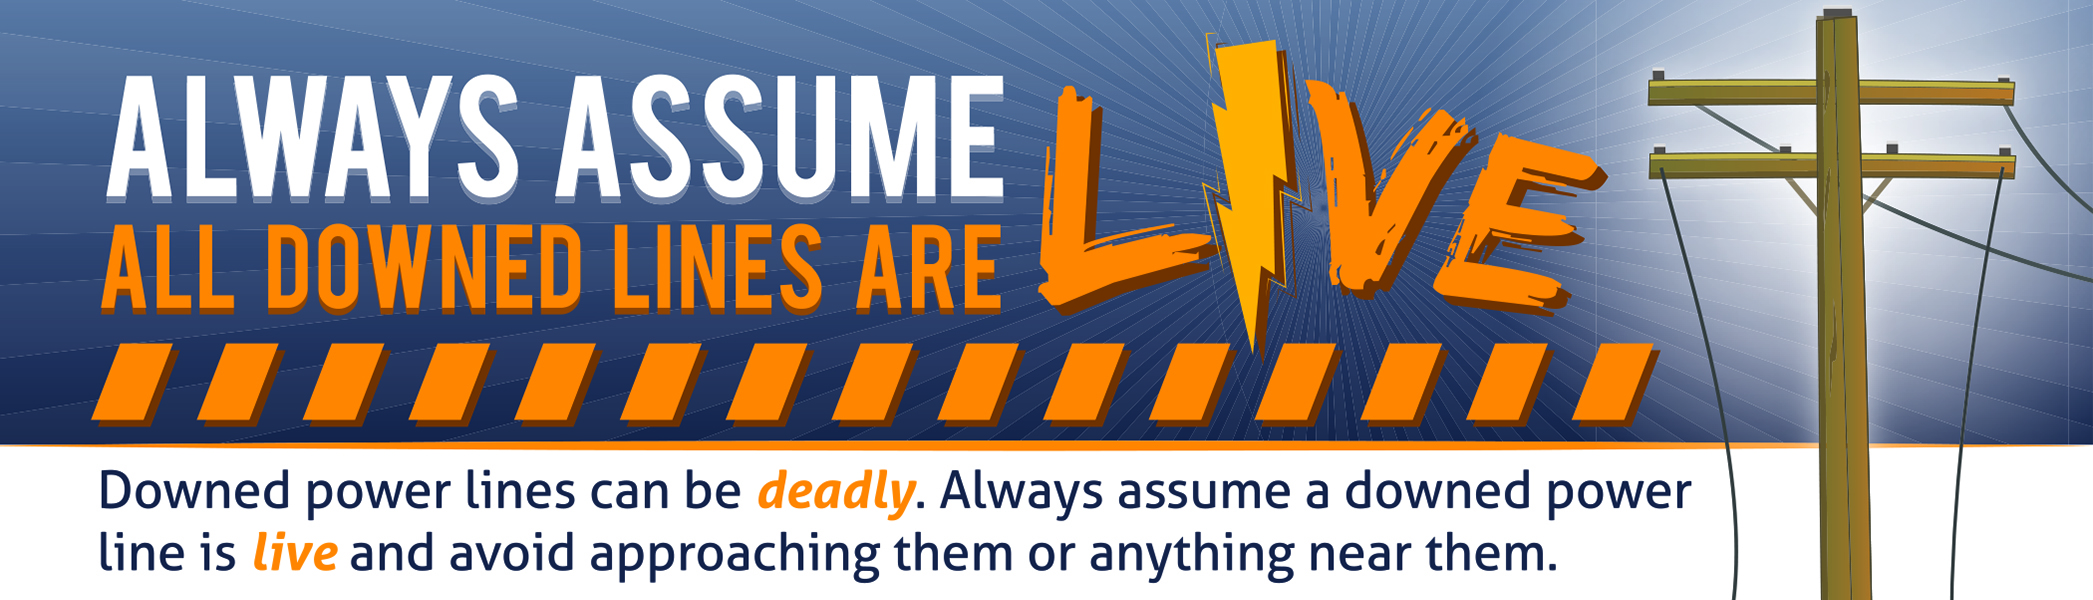 Downed Power Line Safety Information